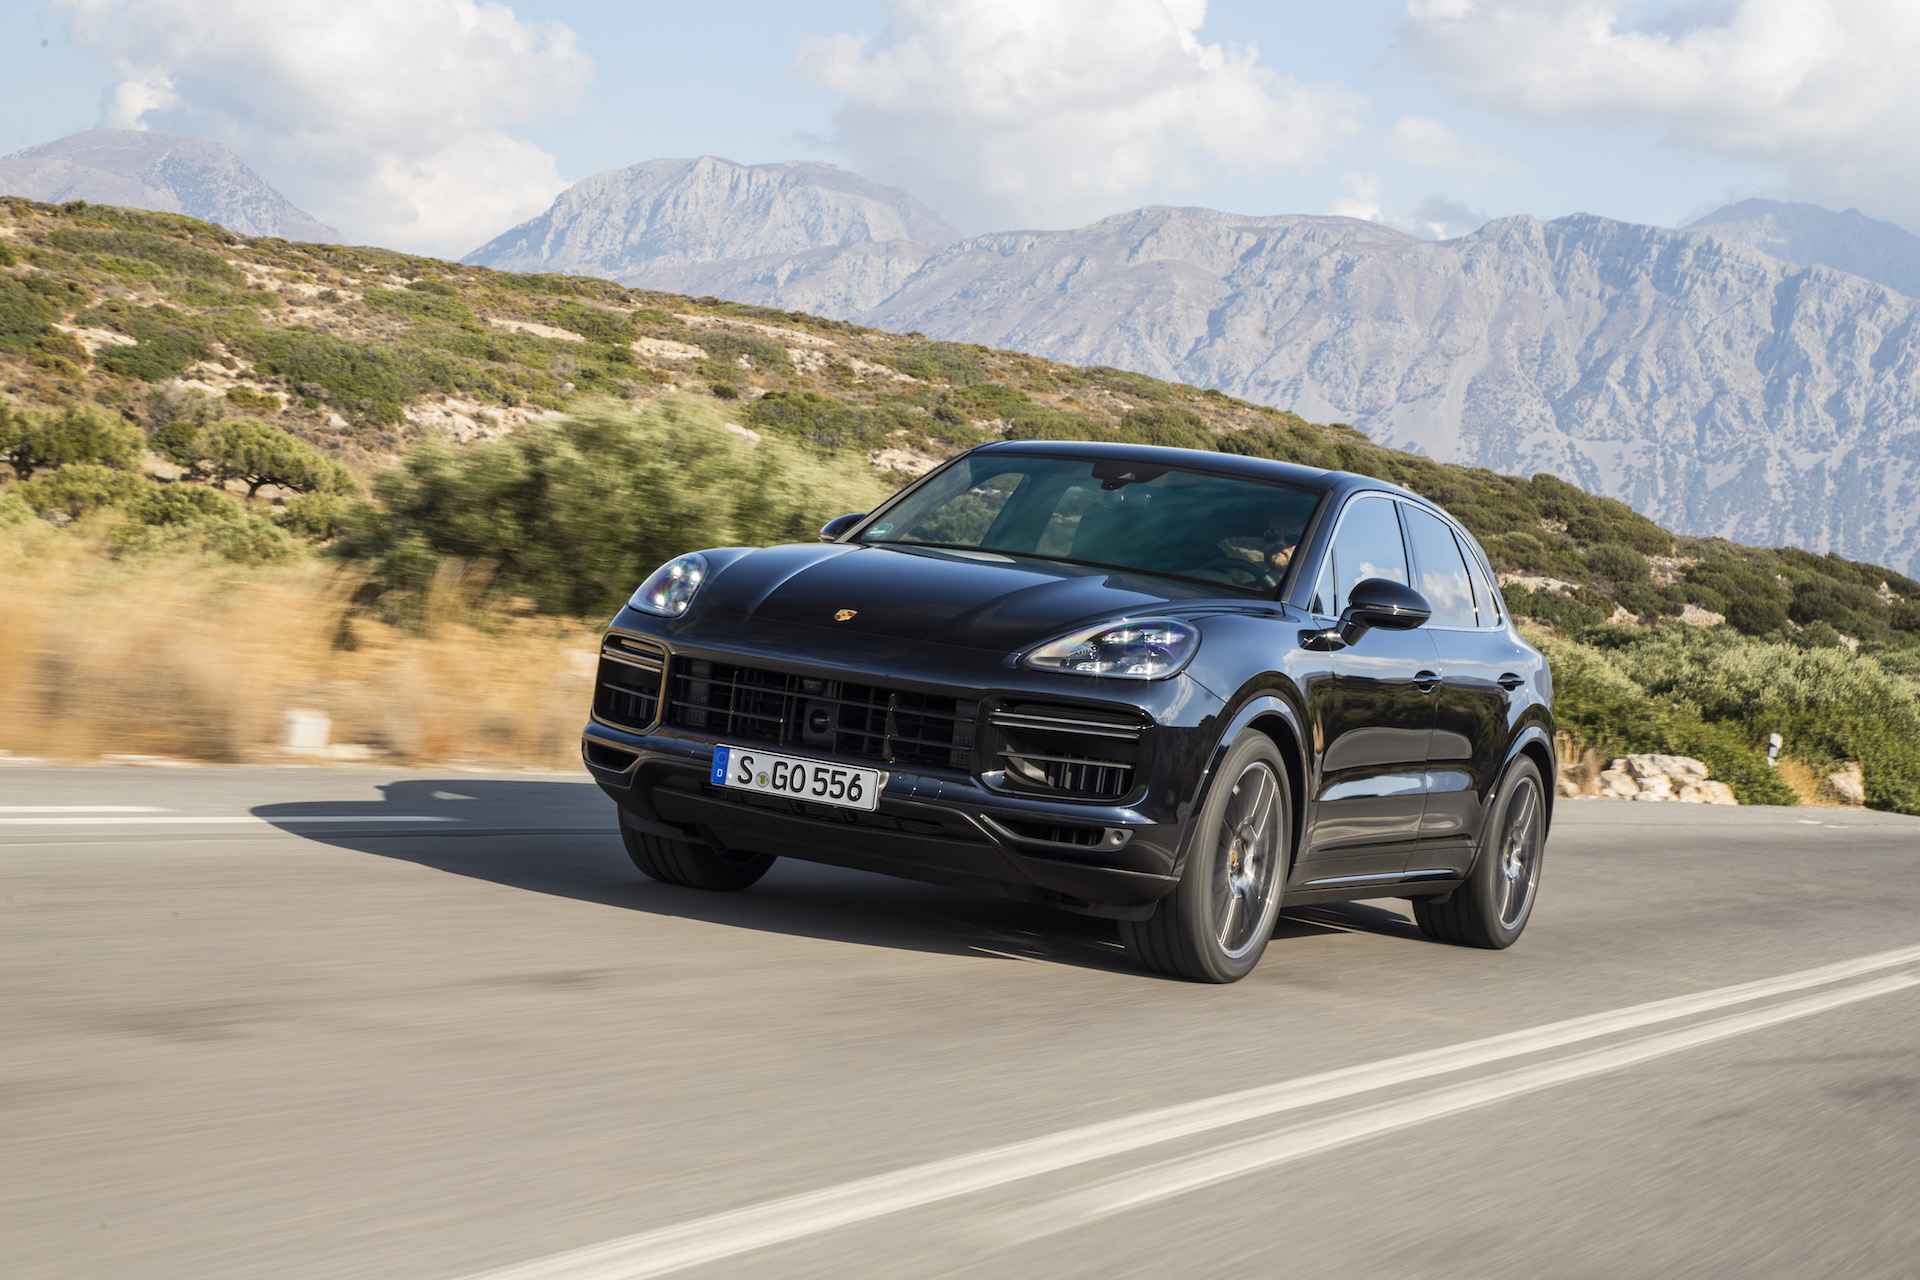 new and used porsche cayenne prices photos reviews specs the car connection. Black Bedroom Furniture Sets. Home Design Ideas